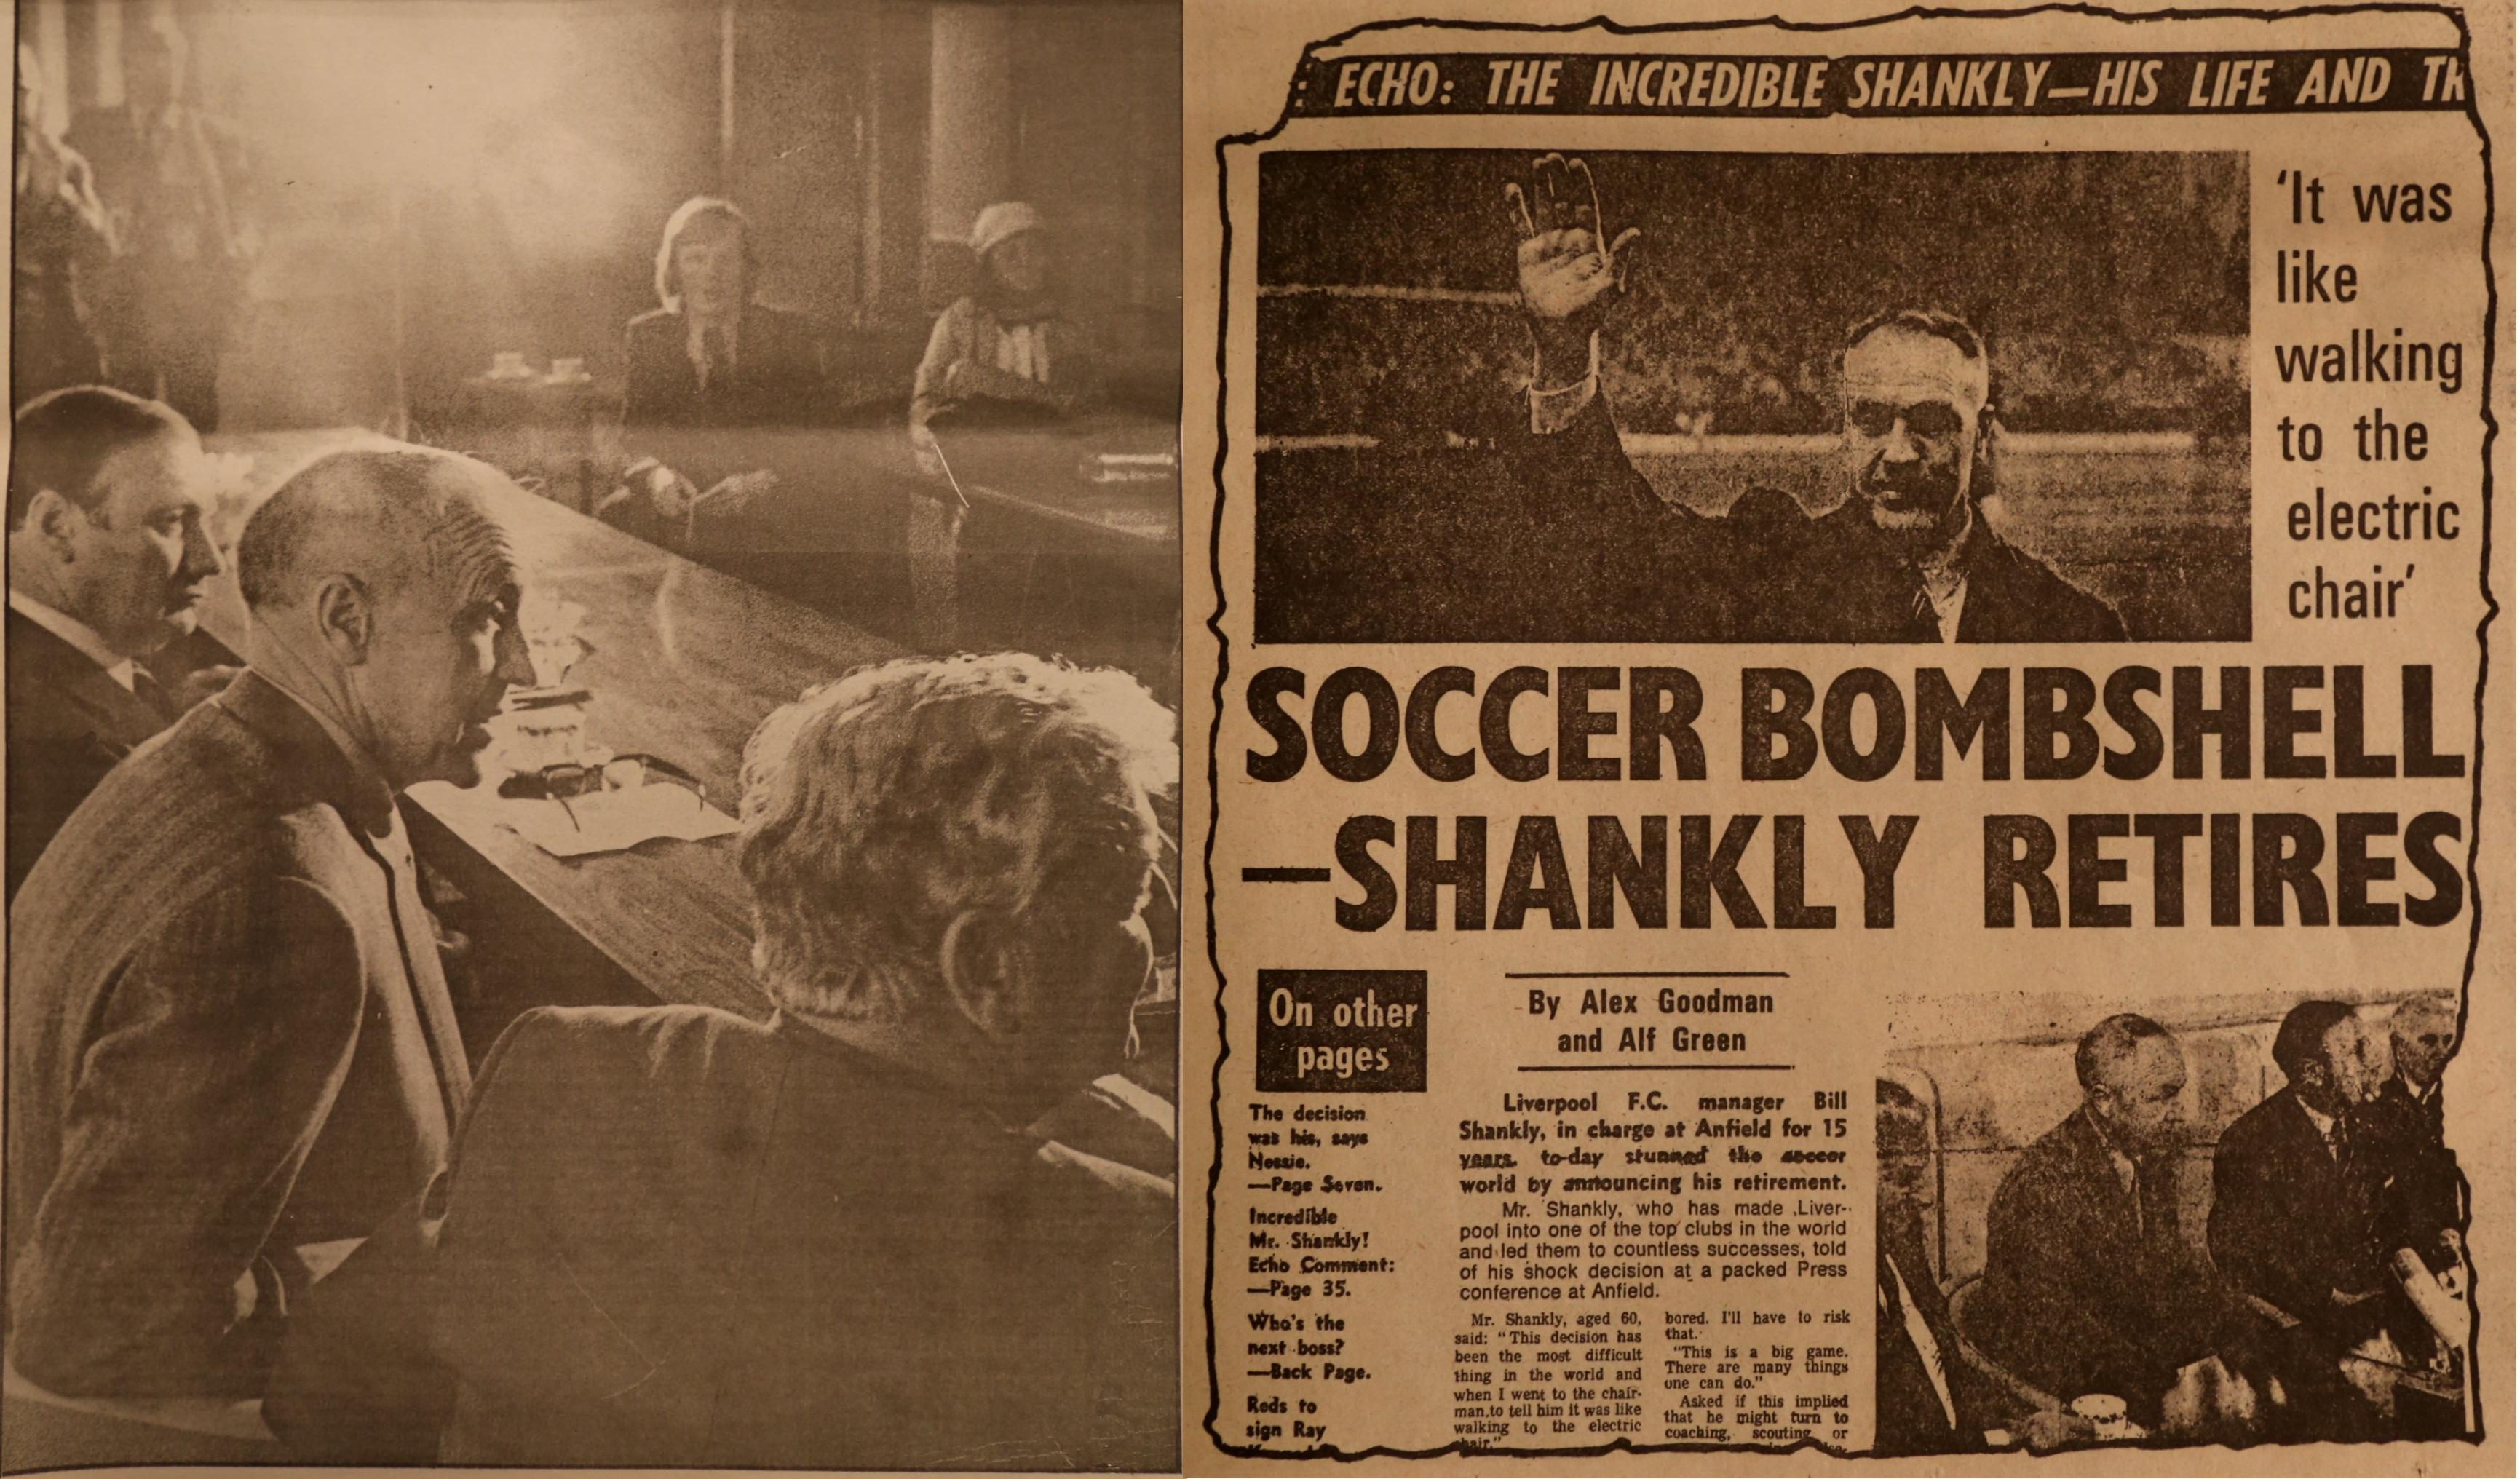 Soccer bombshell - Shankly quits!